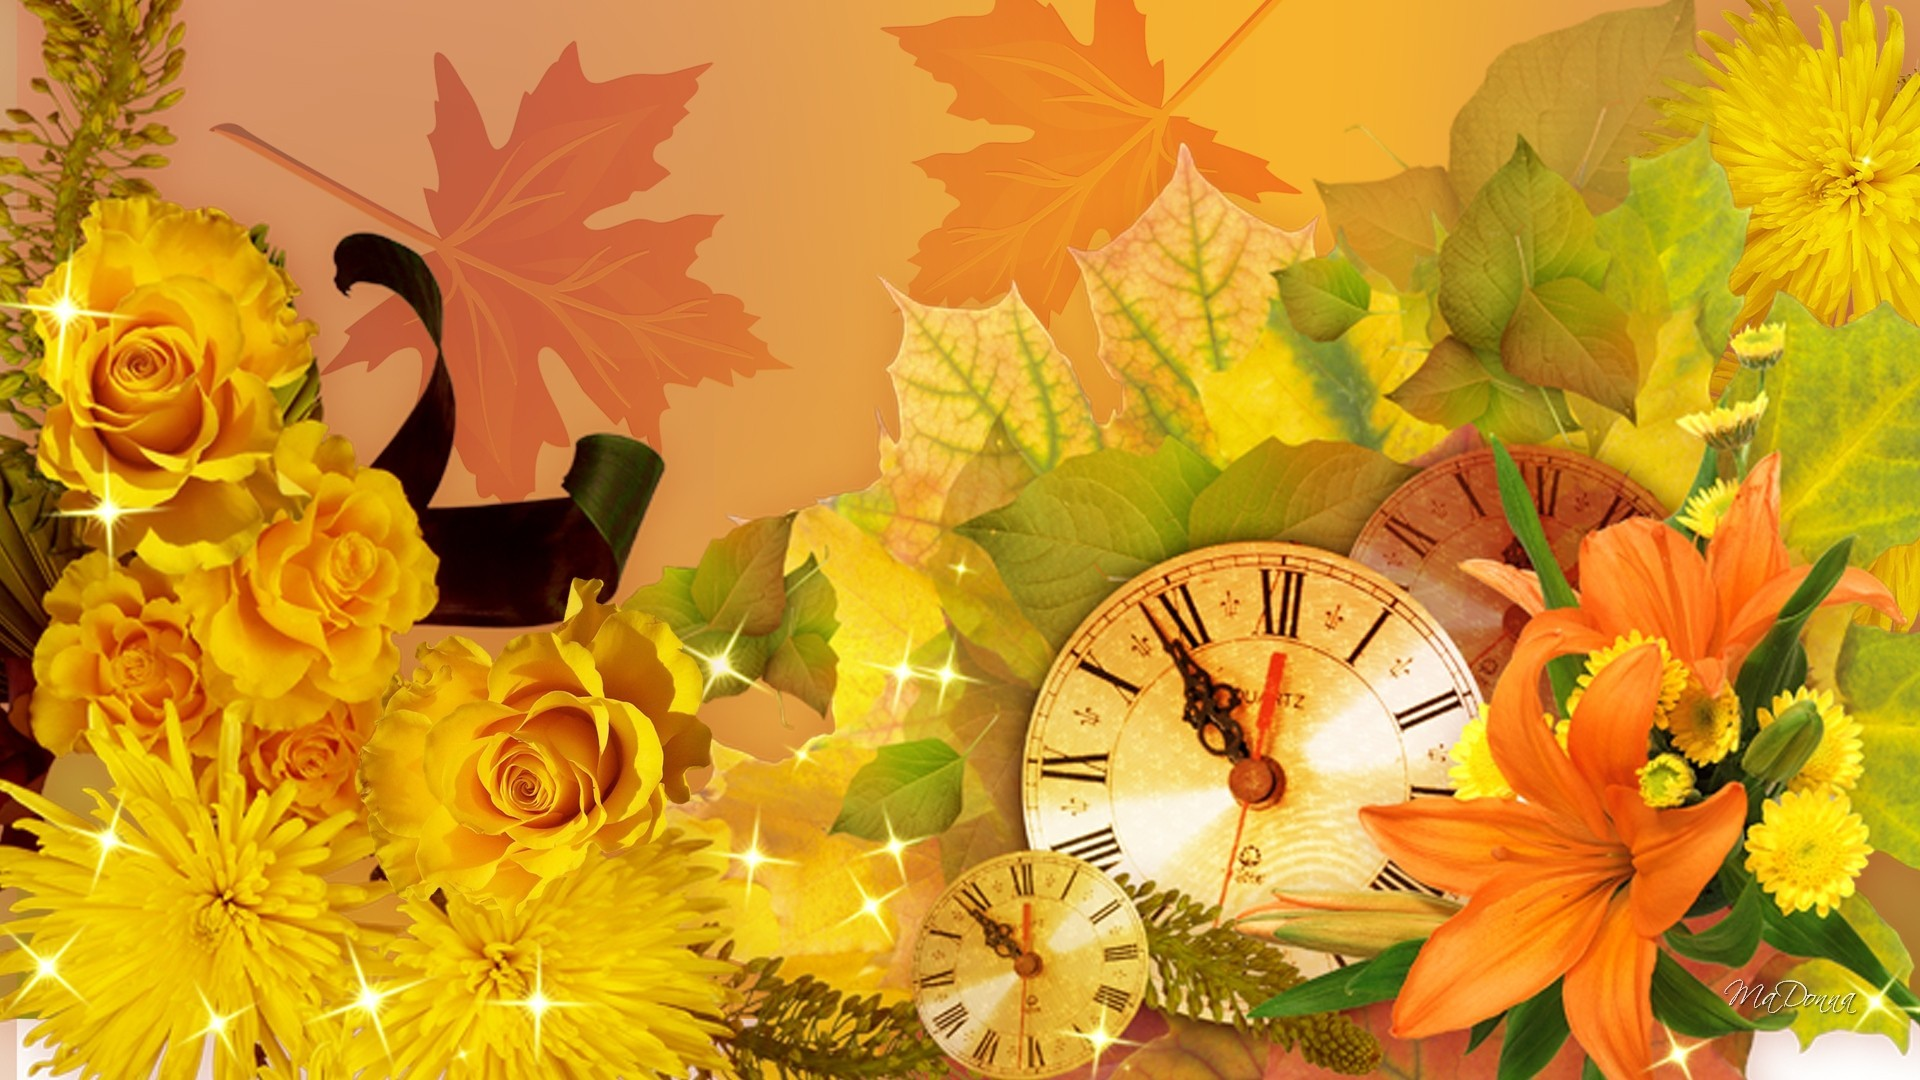 1920x1080 Flowers - Ribbon Roses First Astors Orange Leaves Day Gold Autumn Time  Clock Flowers Lilies Fall